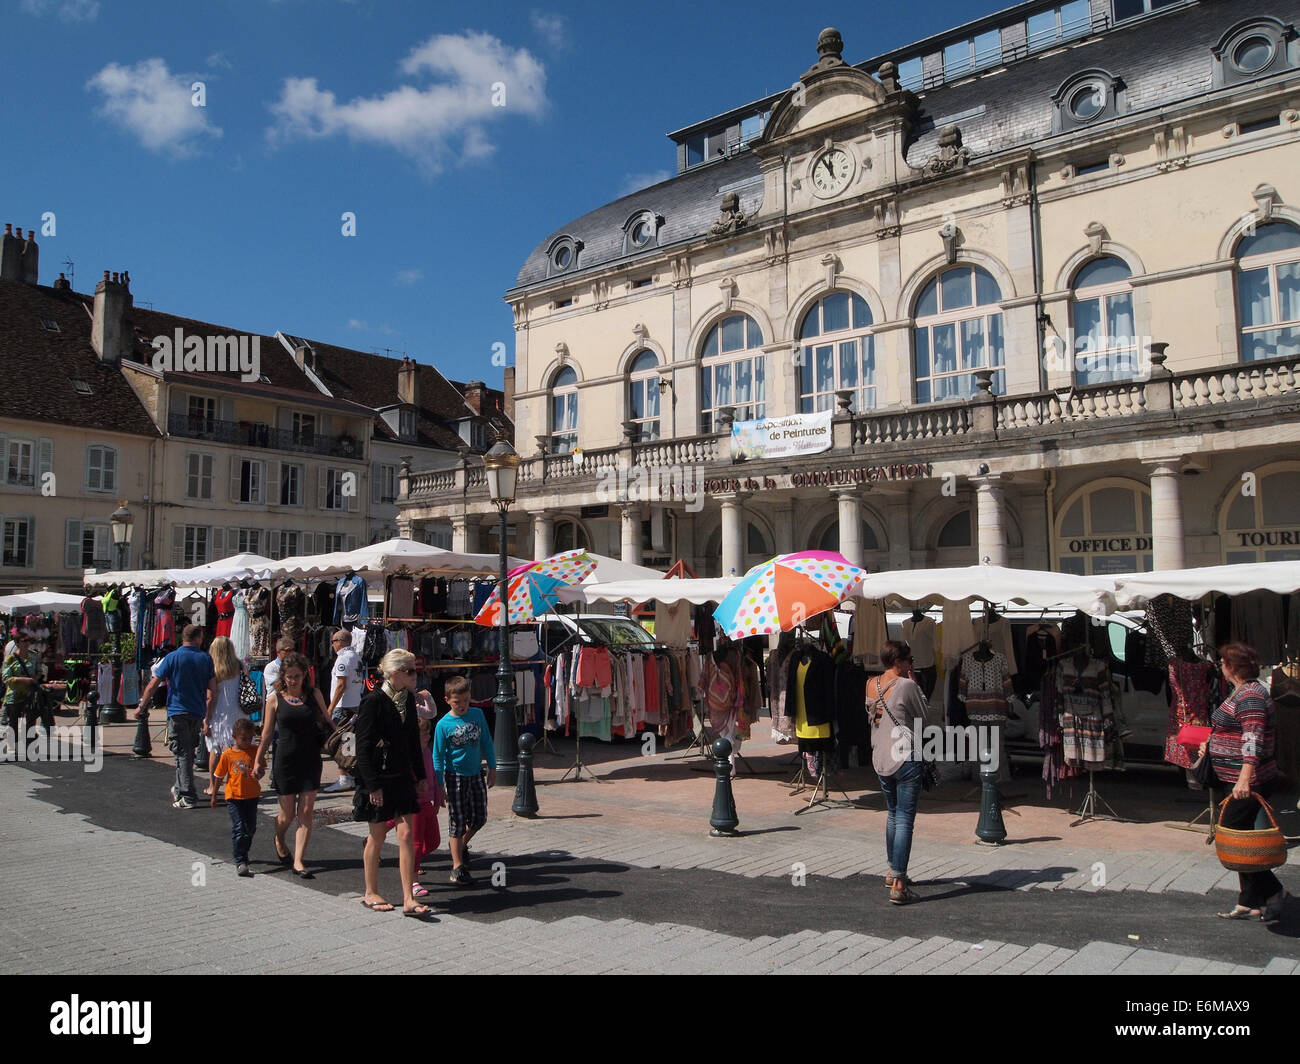 market in lons le saunier jura france stock photo royalty free image 72977025 alamy. Black Bedroom Furniture Sets. Home Design Ideas